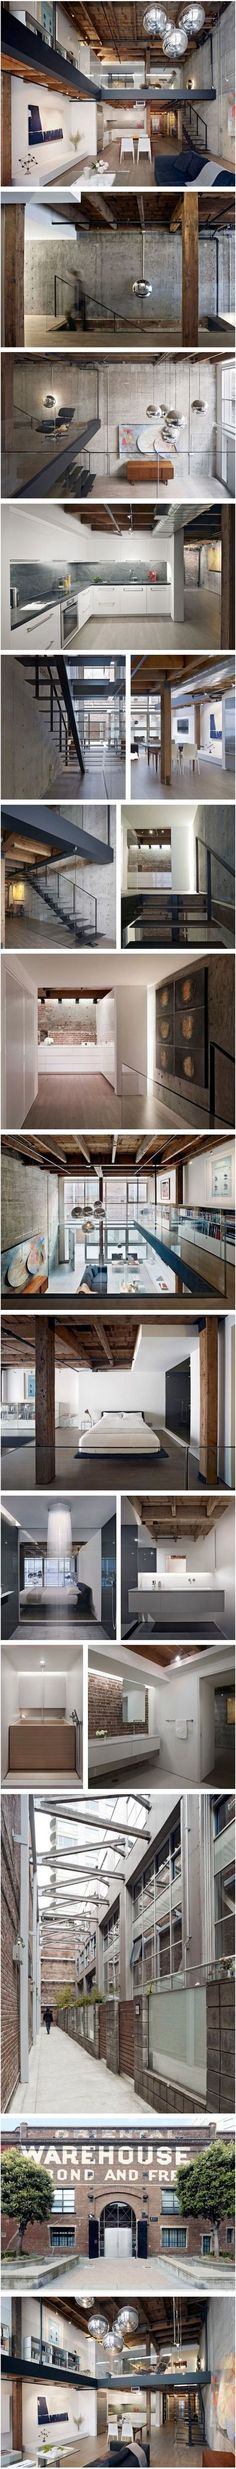 Interior design and architecture for a loft unit in San Francisco's Oriental Warehouse, Building by Edmonds + Lee Architects Warehouse Living, Warehouse Loft, Warehouse Design, Industrial House, Industrial Interiors, Industrial Style, Loft Interiors, Vintage Industrial, Industrial Design